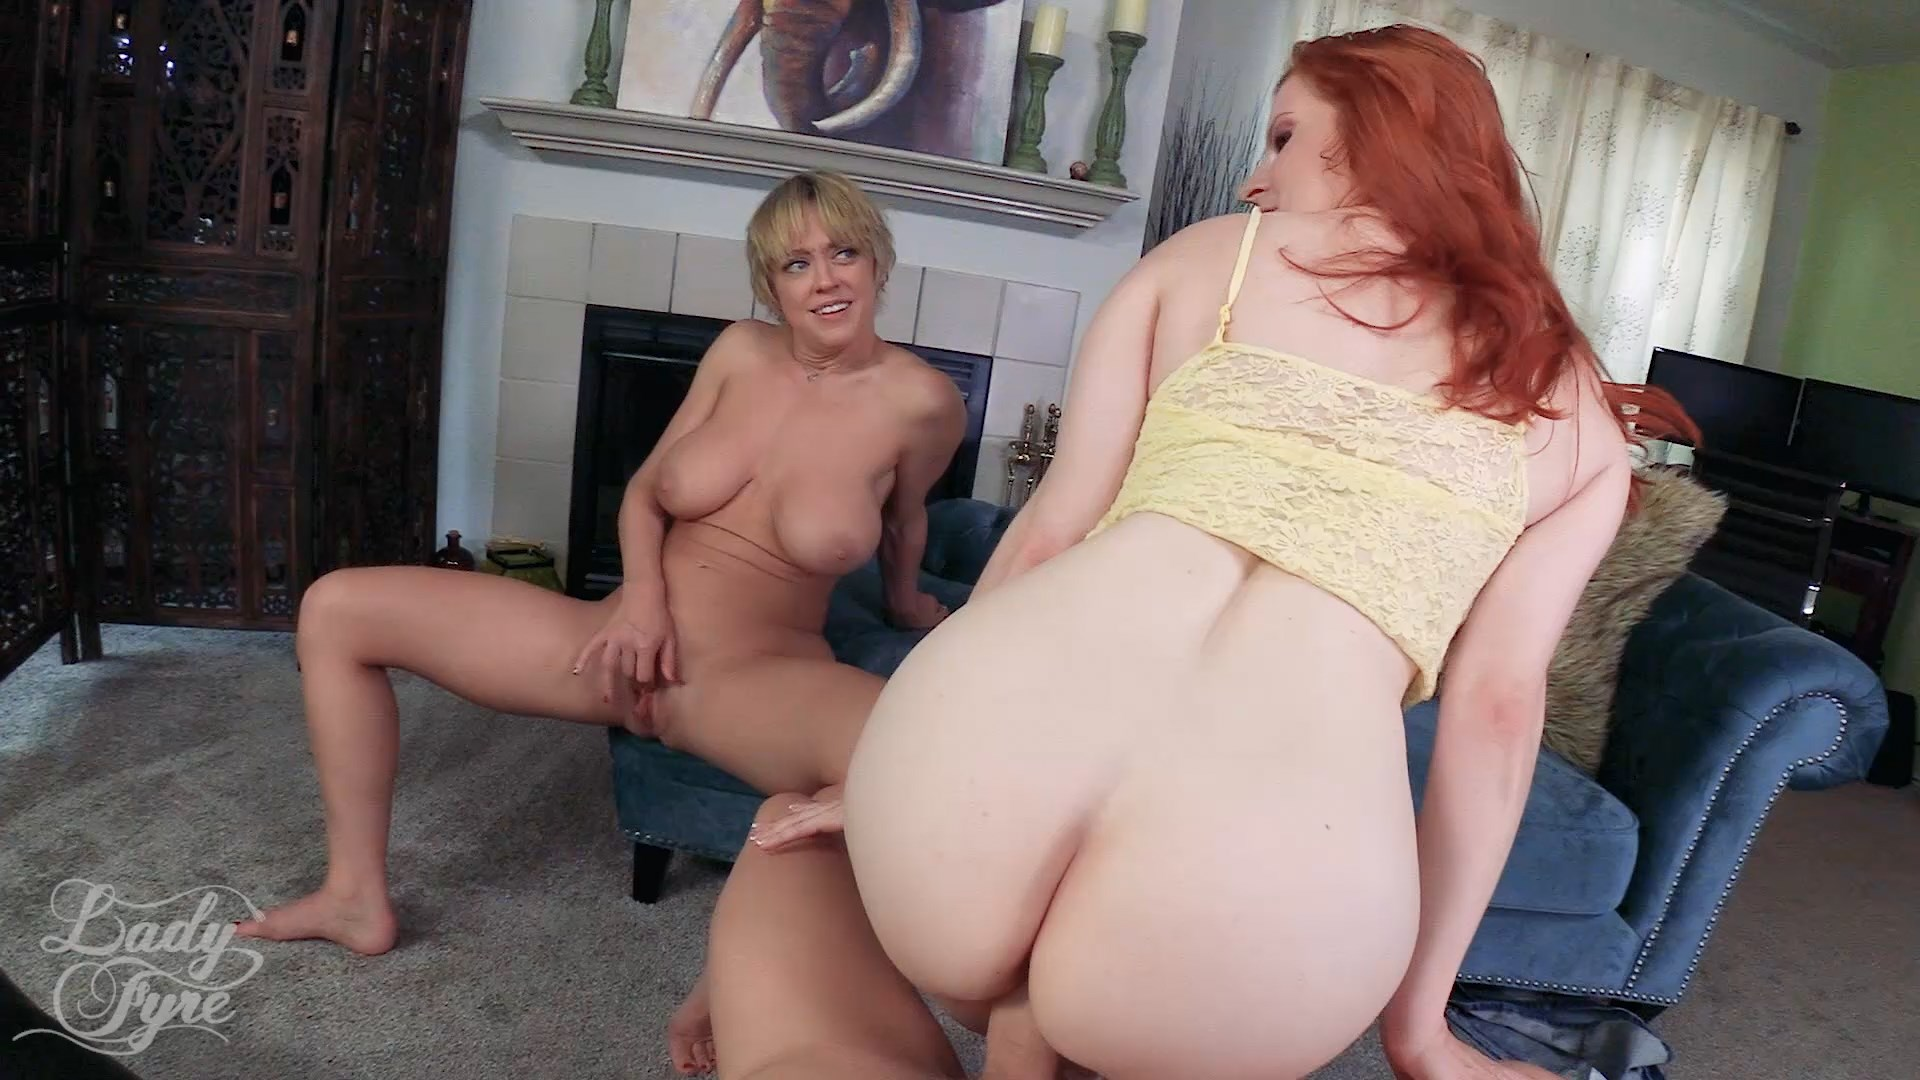 Lady Fyre Femdom - Mom Made Me Impregnate Aunt Dee - Lady Fyre and Dee Williams